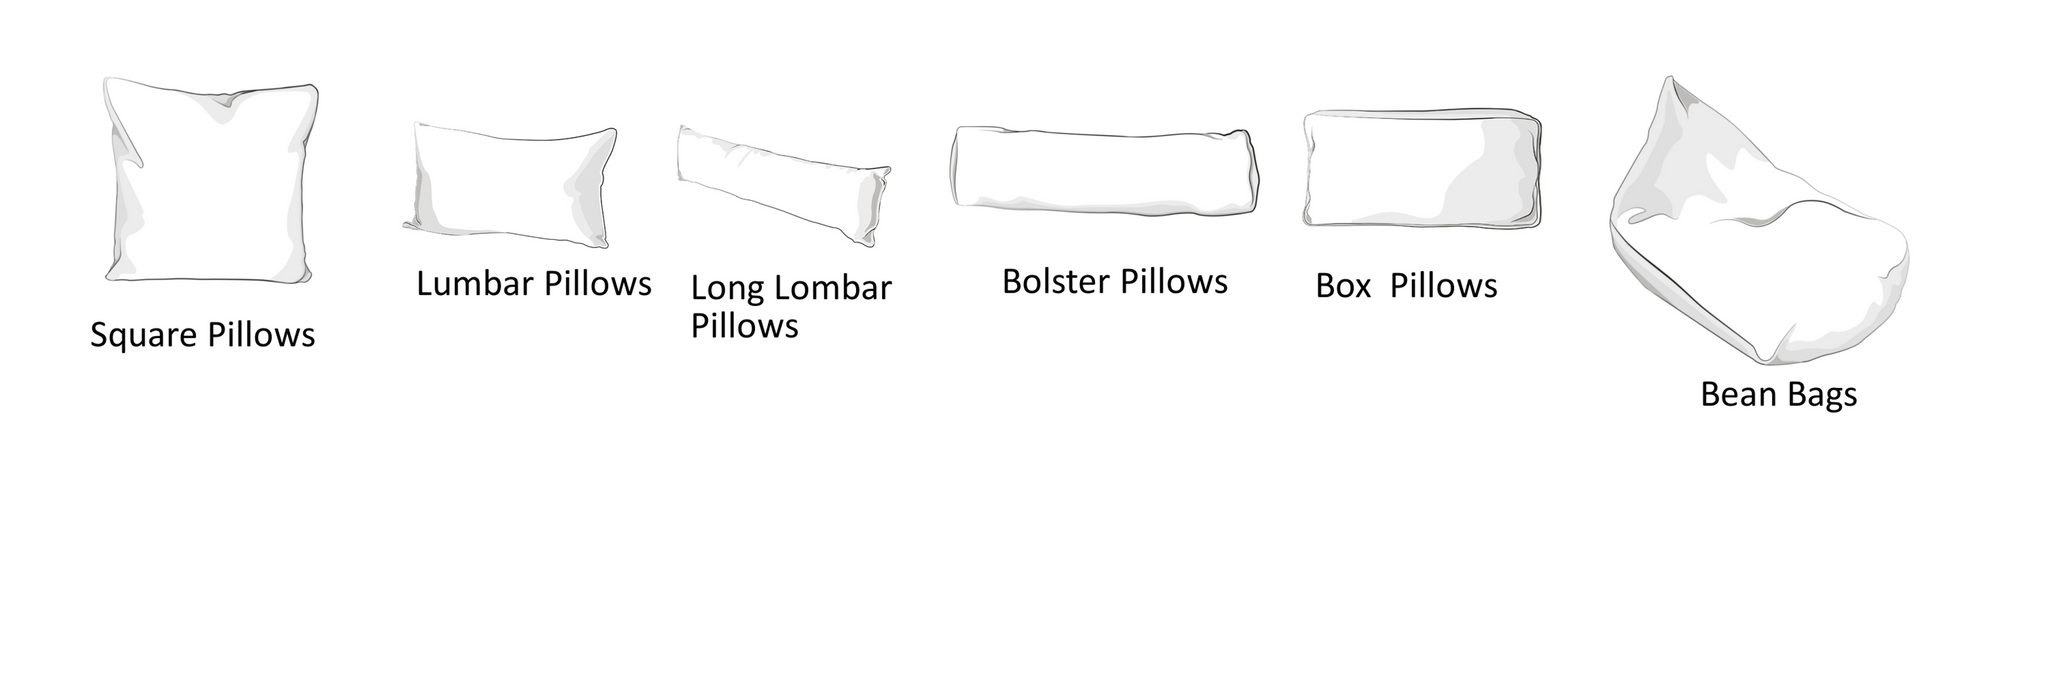 pillow shape